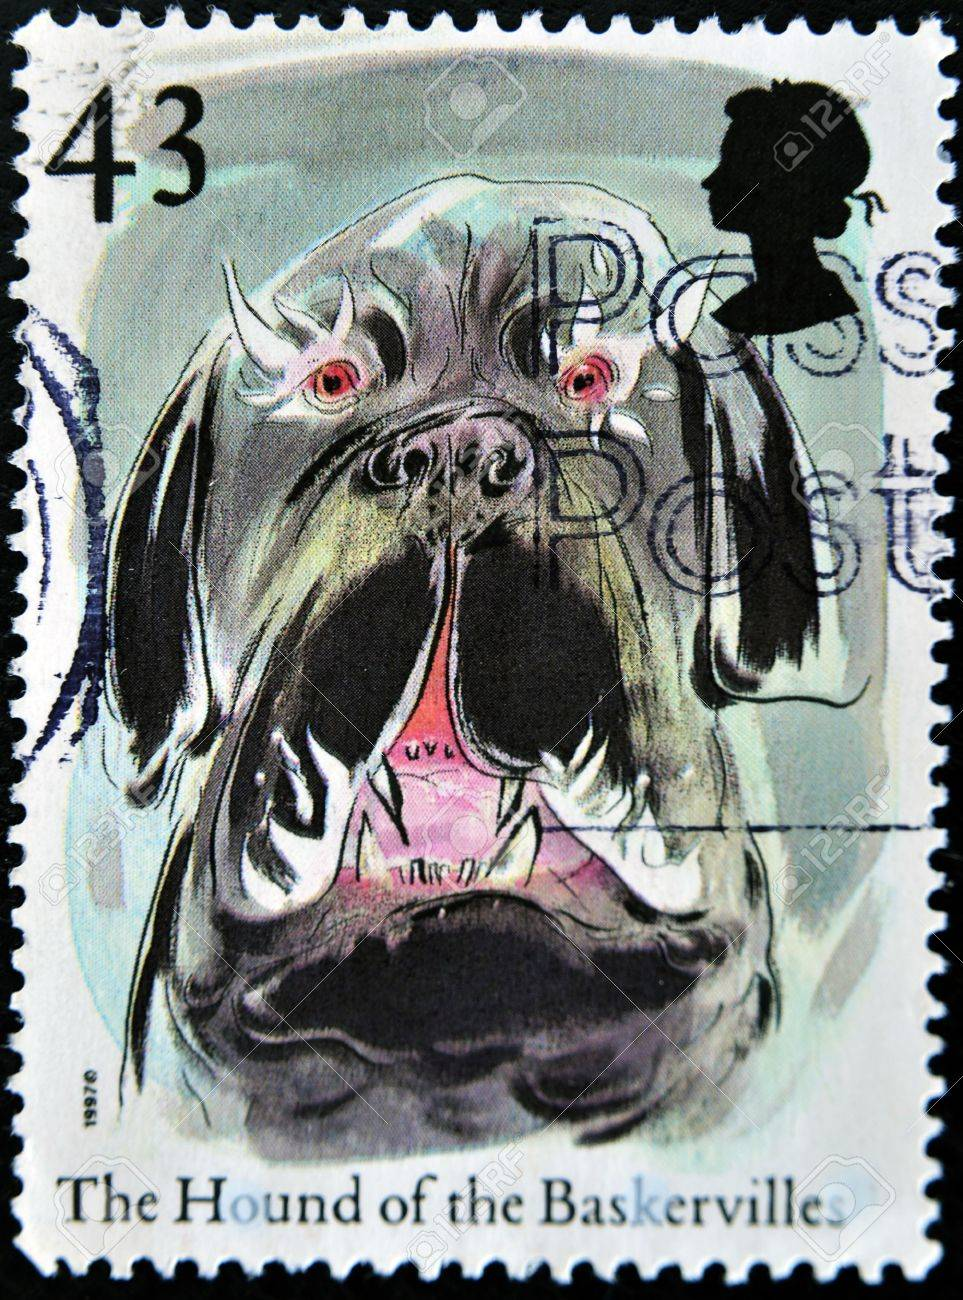 UNITED KINGDOM - CIRCA 1997: A stamp printed in Great Britain shows the hound of the baskervilles, circa 1997 Stock Photo - 11438941